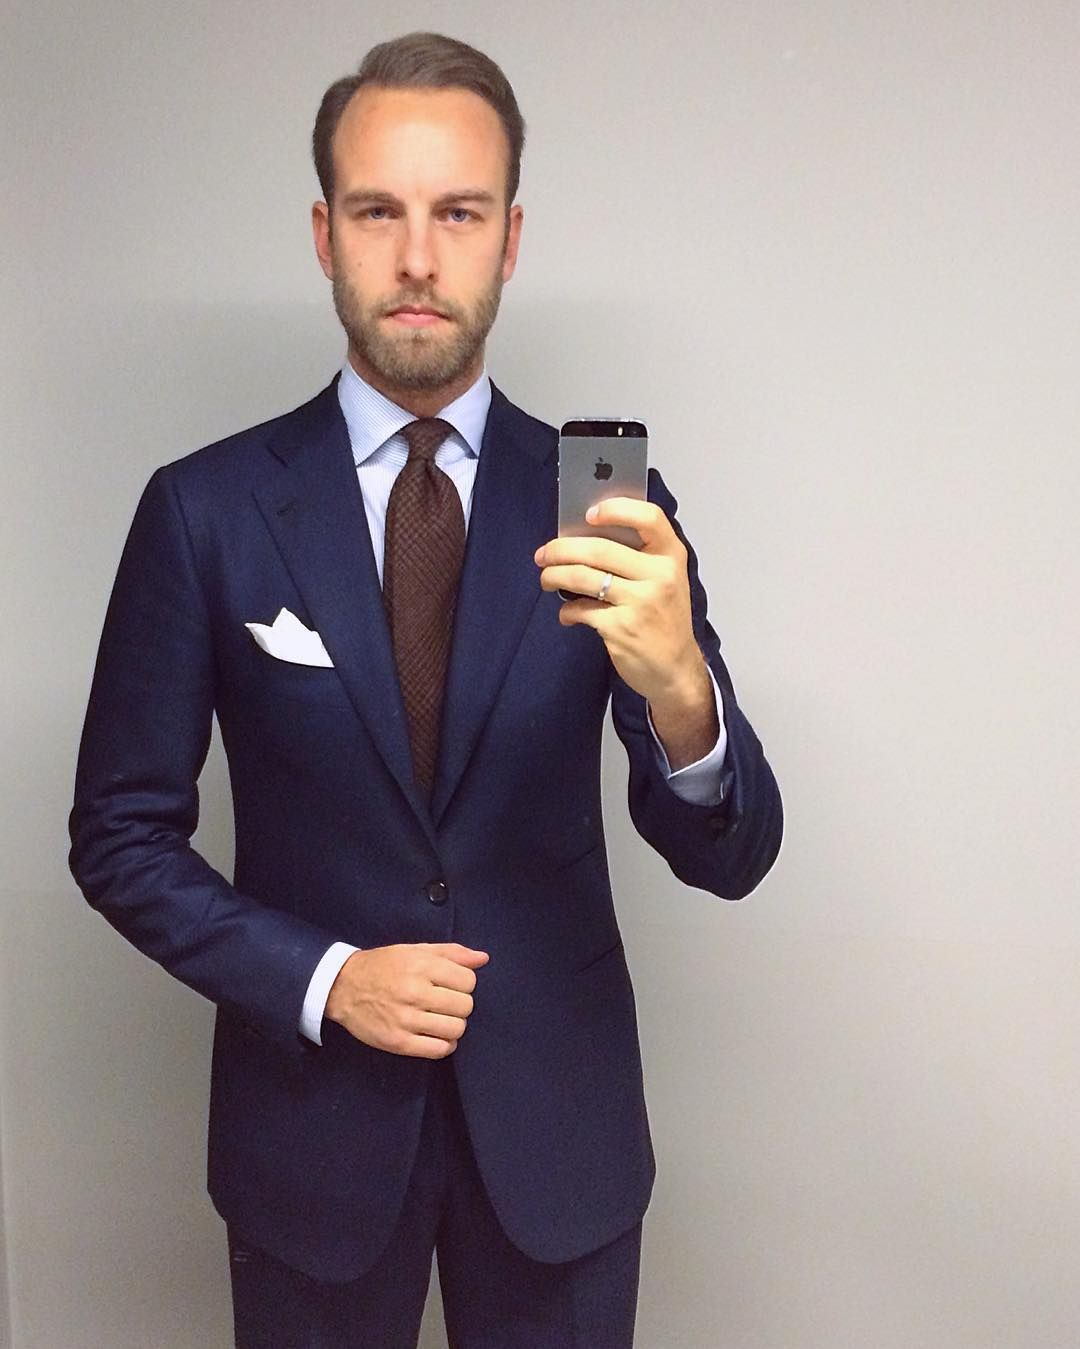 Mr Andreas Weinas In 2020 Blue Suit Mens Fashion Mens Fashion Suits Navy Blue Suit Mens